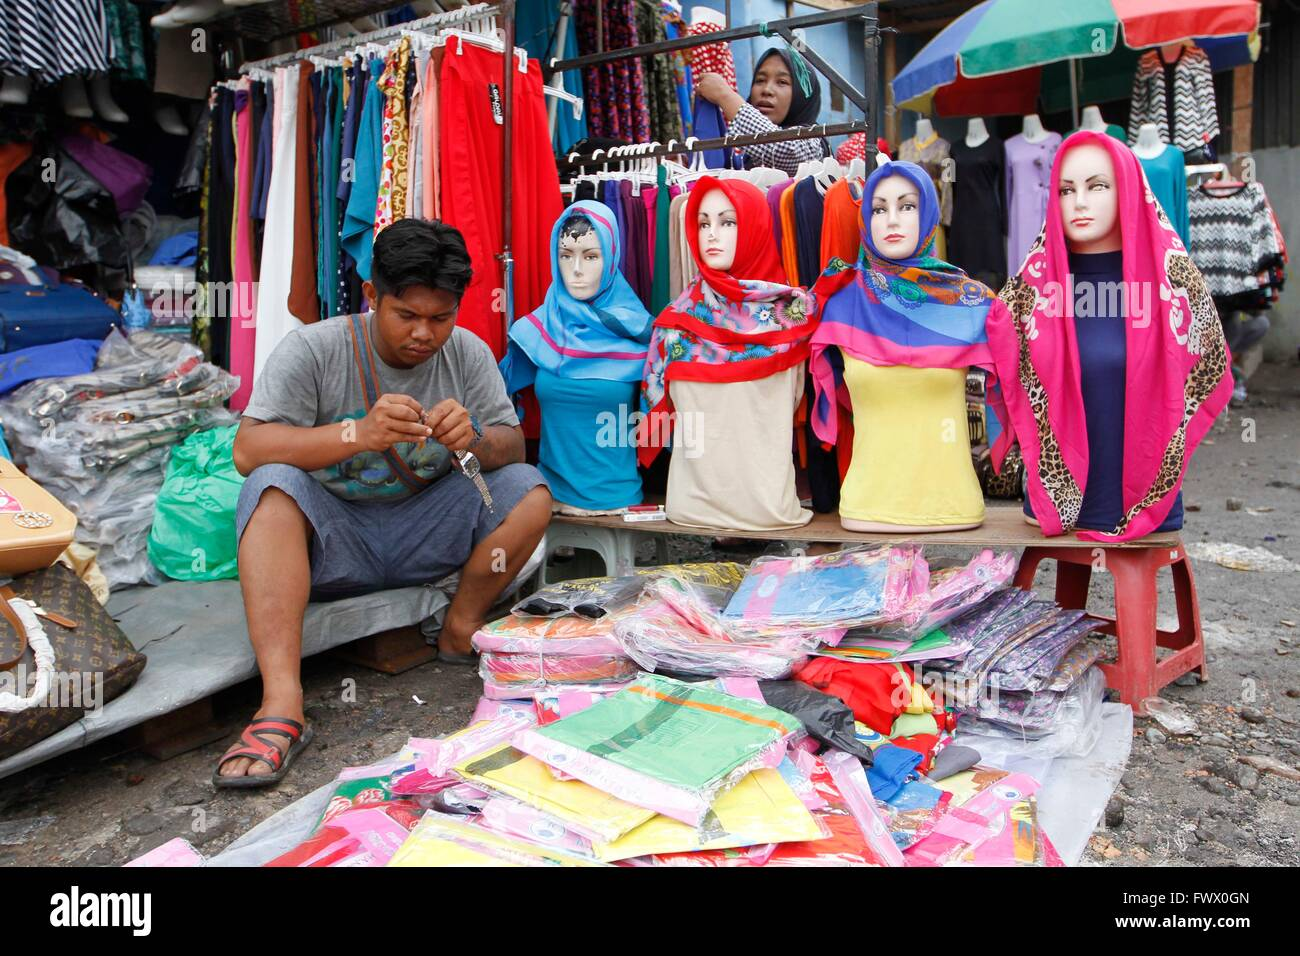 Jakarta, Indonesia. 01st Mar, 2016. A vendor waits for customers ...